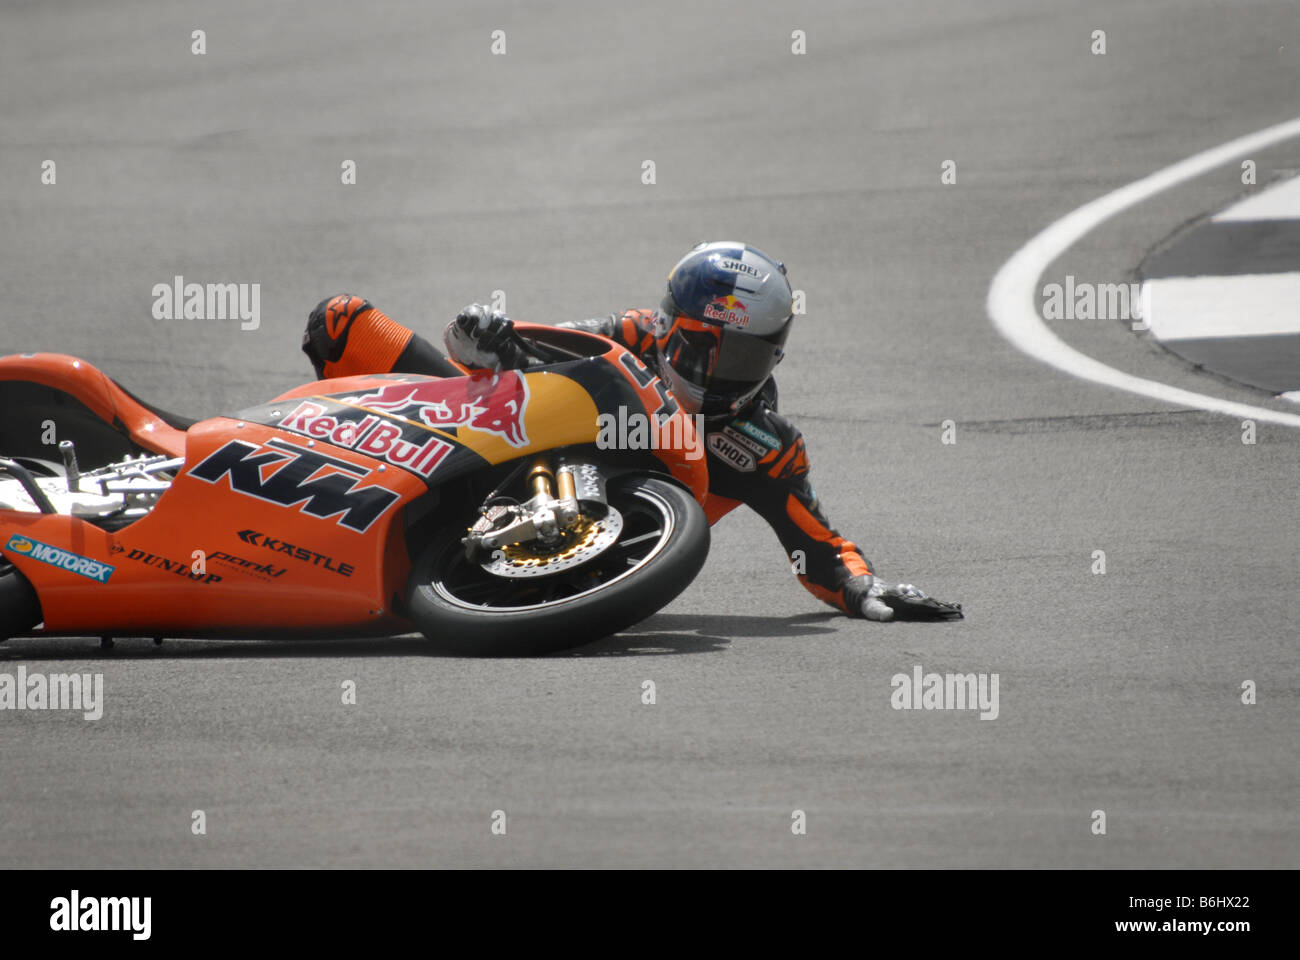 British Grand Prix Moto Gp Stock Photos & British Grand Prix Moto Gp Stock Images - Alamy